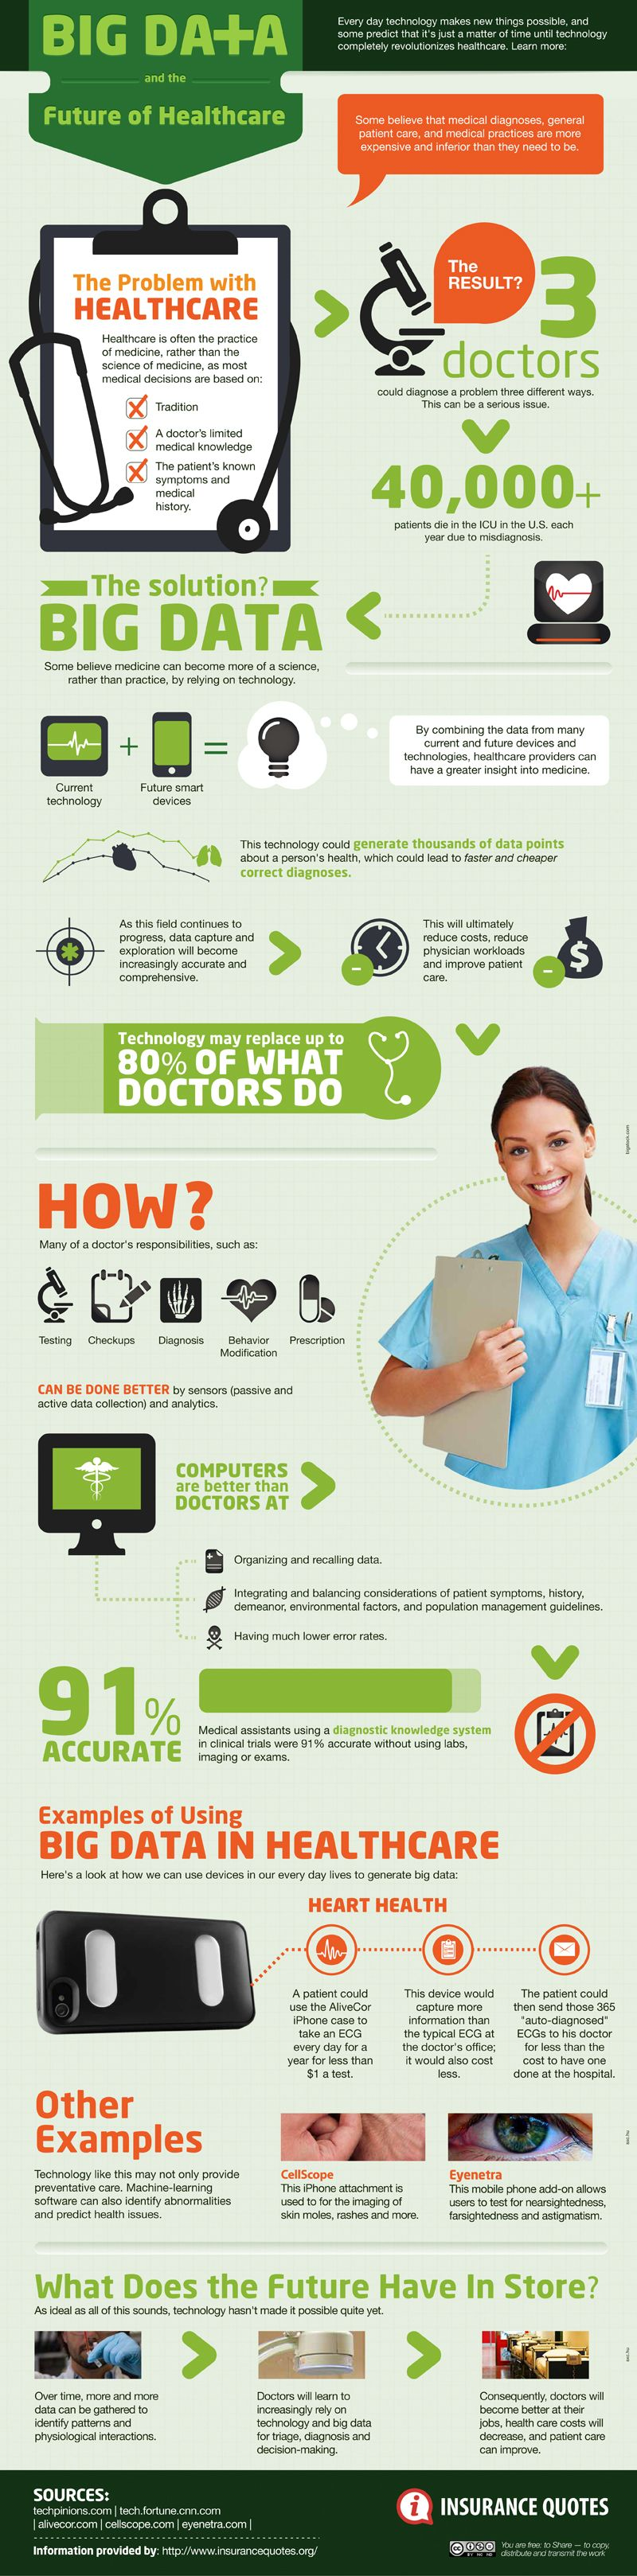 Bigdata And The Future Of Healthcare Healthcare Infographics Big Data Infographic Health